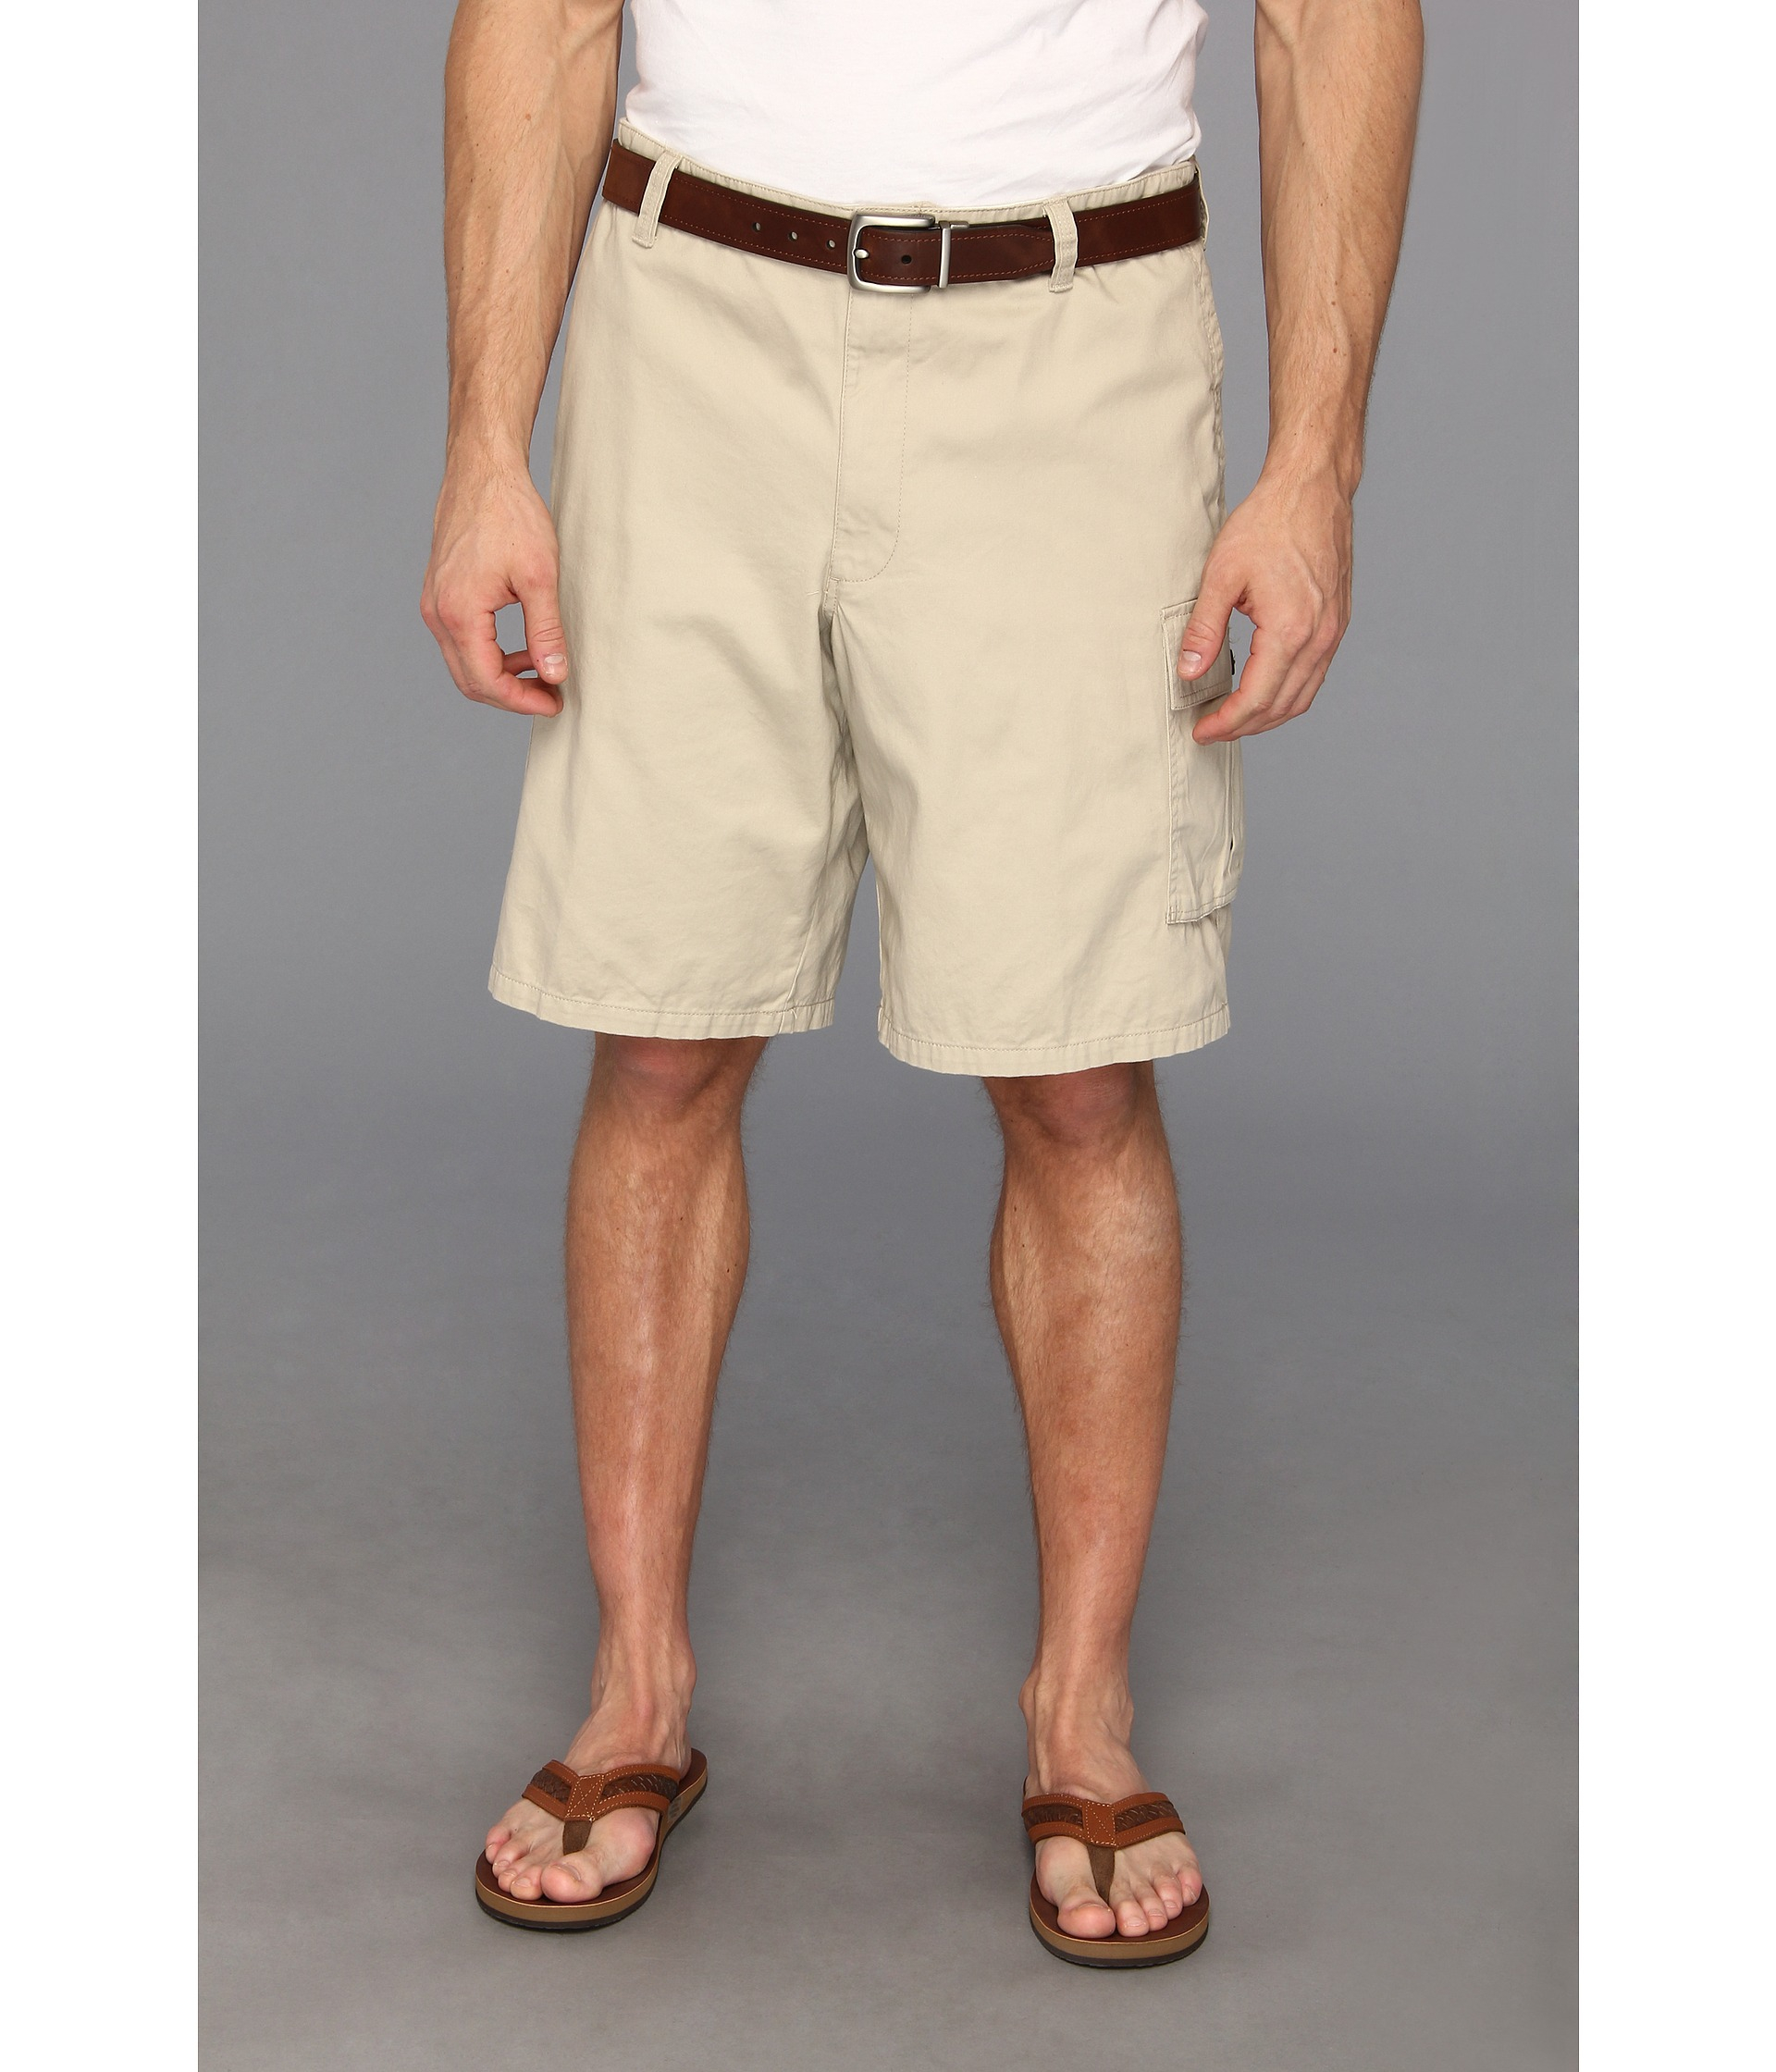 a434a008 Dockers Big & Tall Core Cargo Short in Natural for Men - Lyst